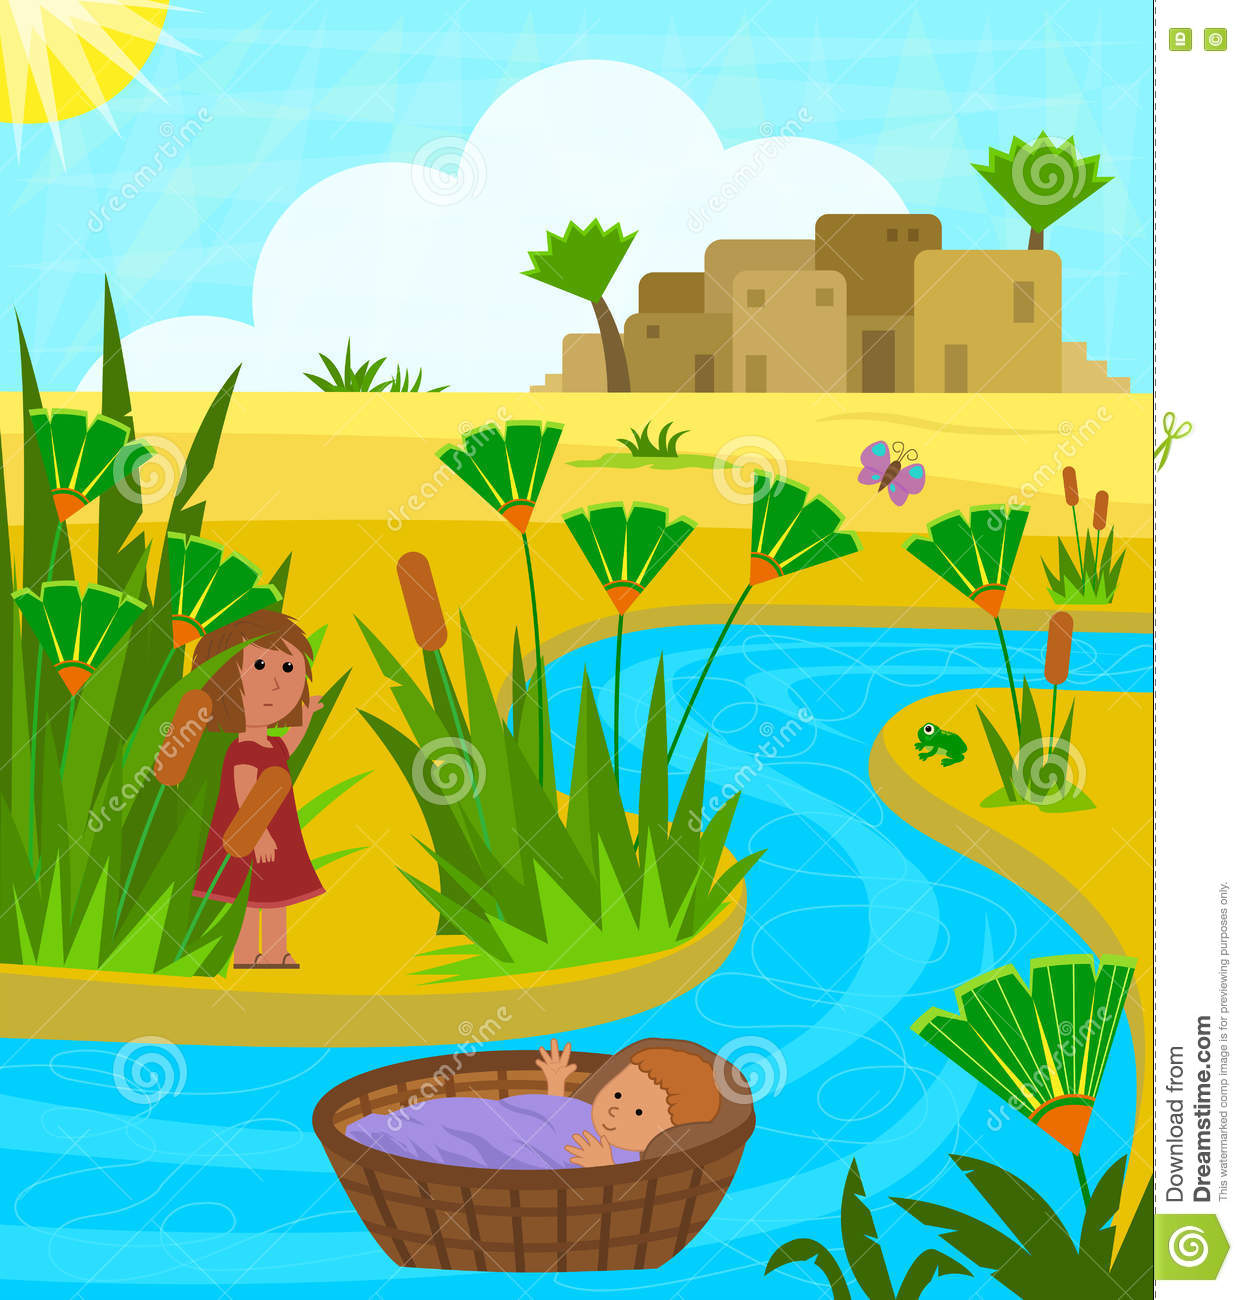 Moses Cartoons Illustrations Amp Vector Stock Images